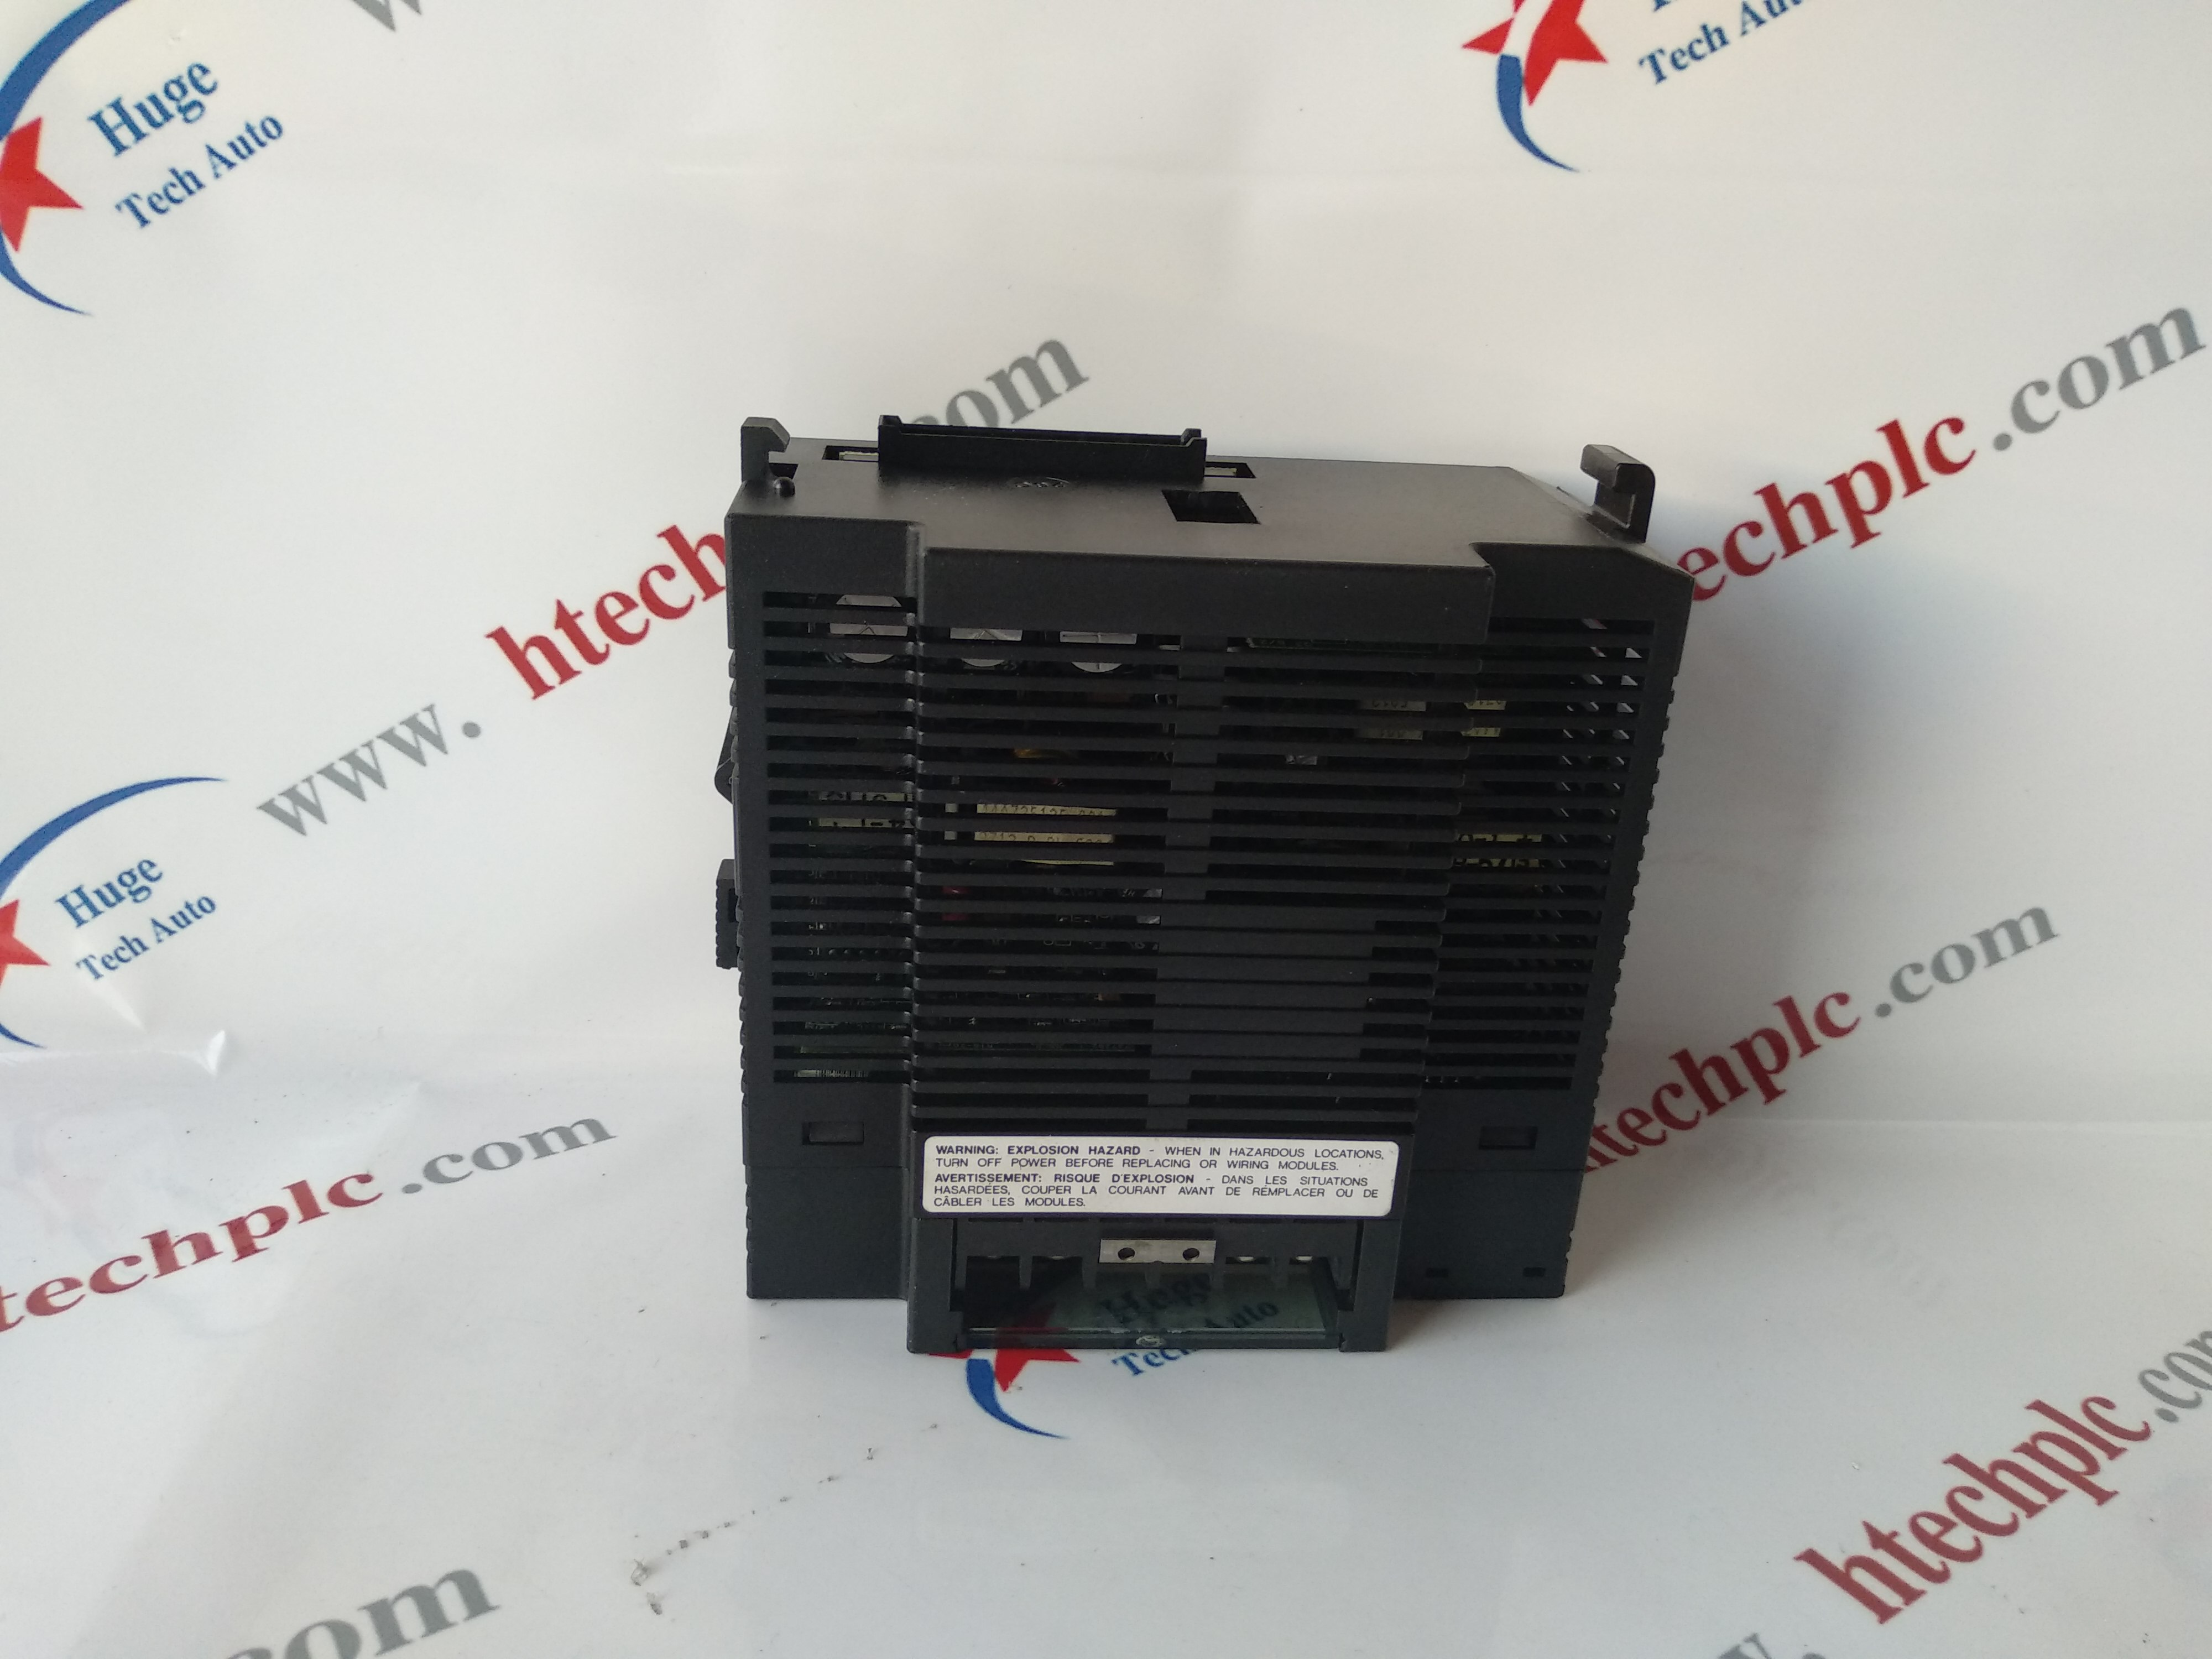 GE 531X121PCRAGG1 brand new PLC DCS TSI system spare parts in stock